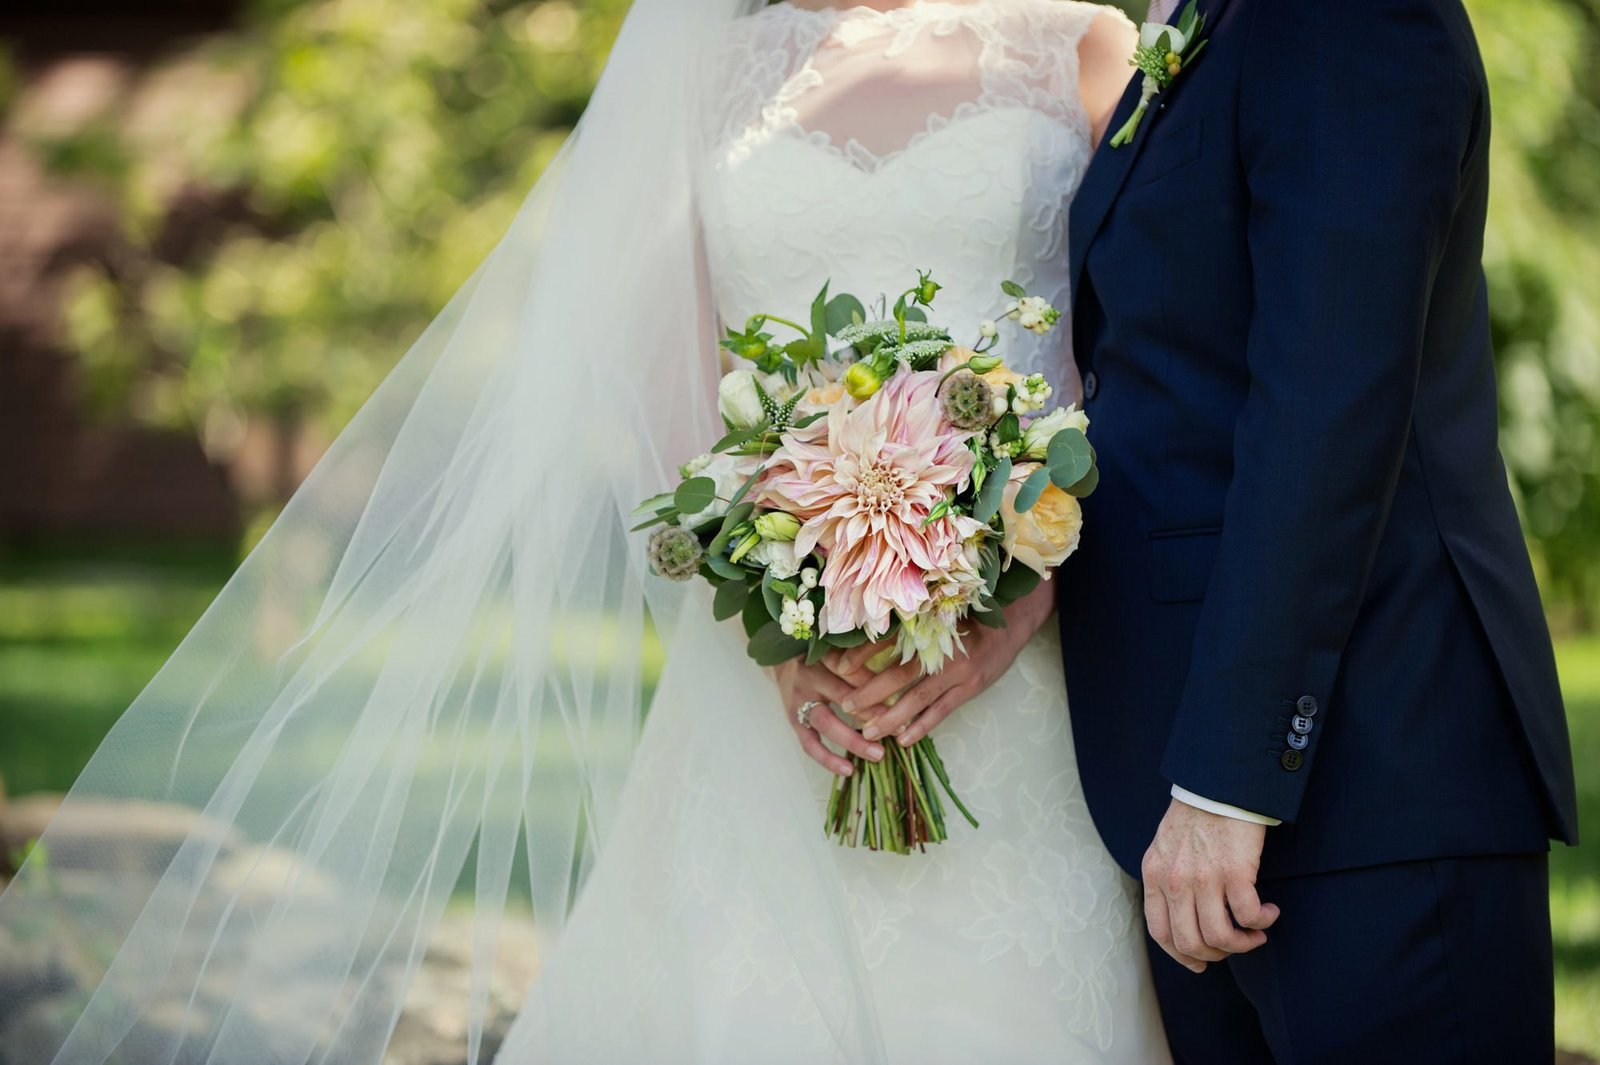 Gorgeous bridal bouquet with garden roses, and dahlias for home wedding in Connecticut CT